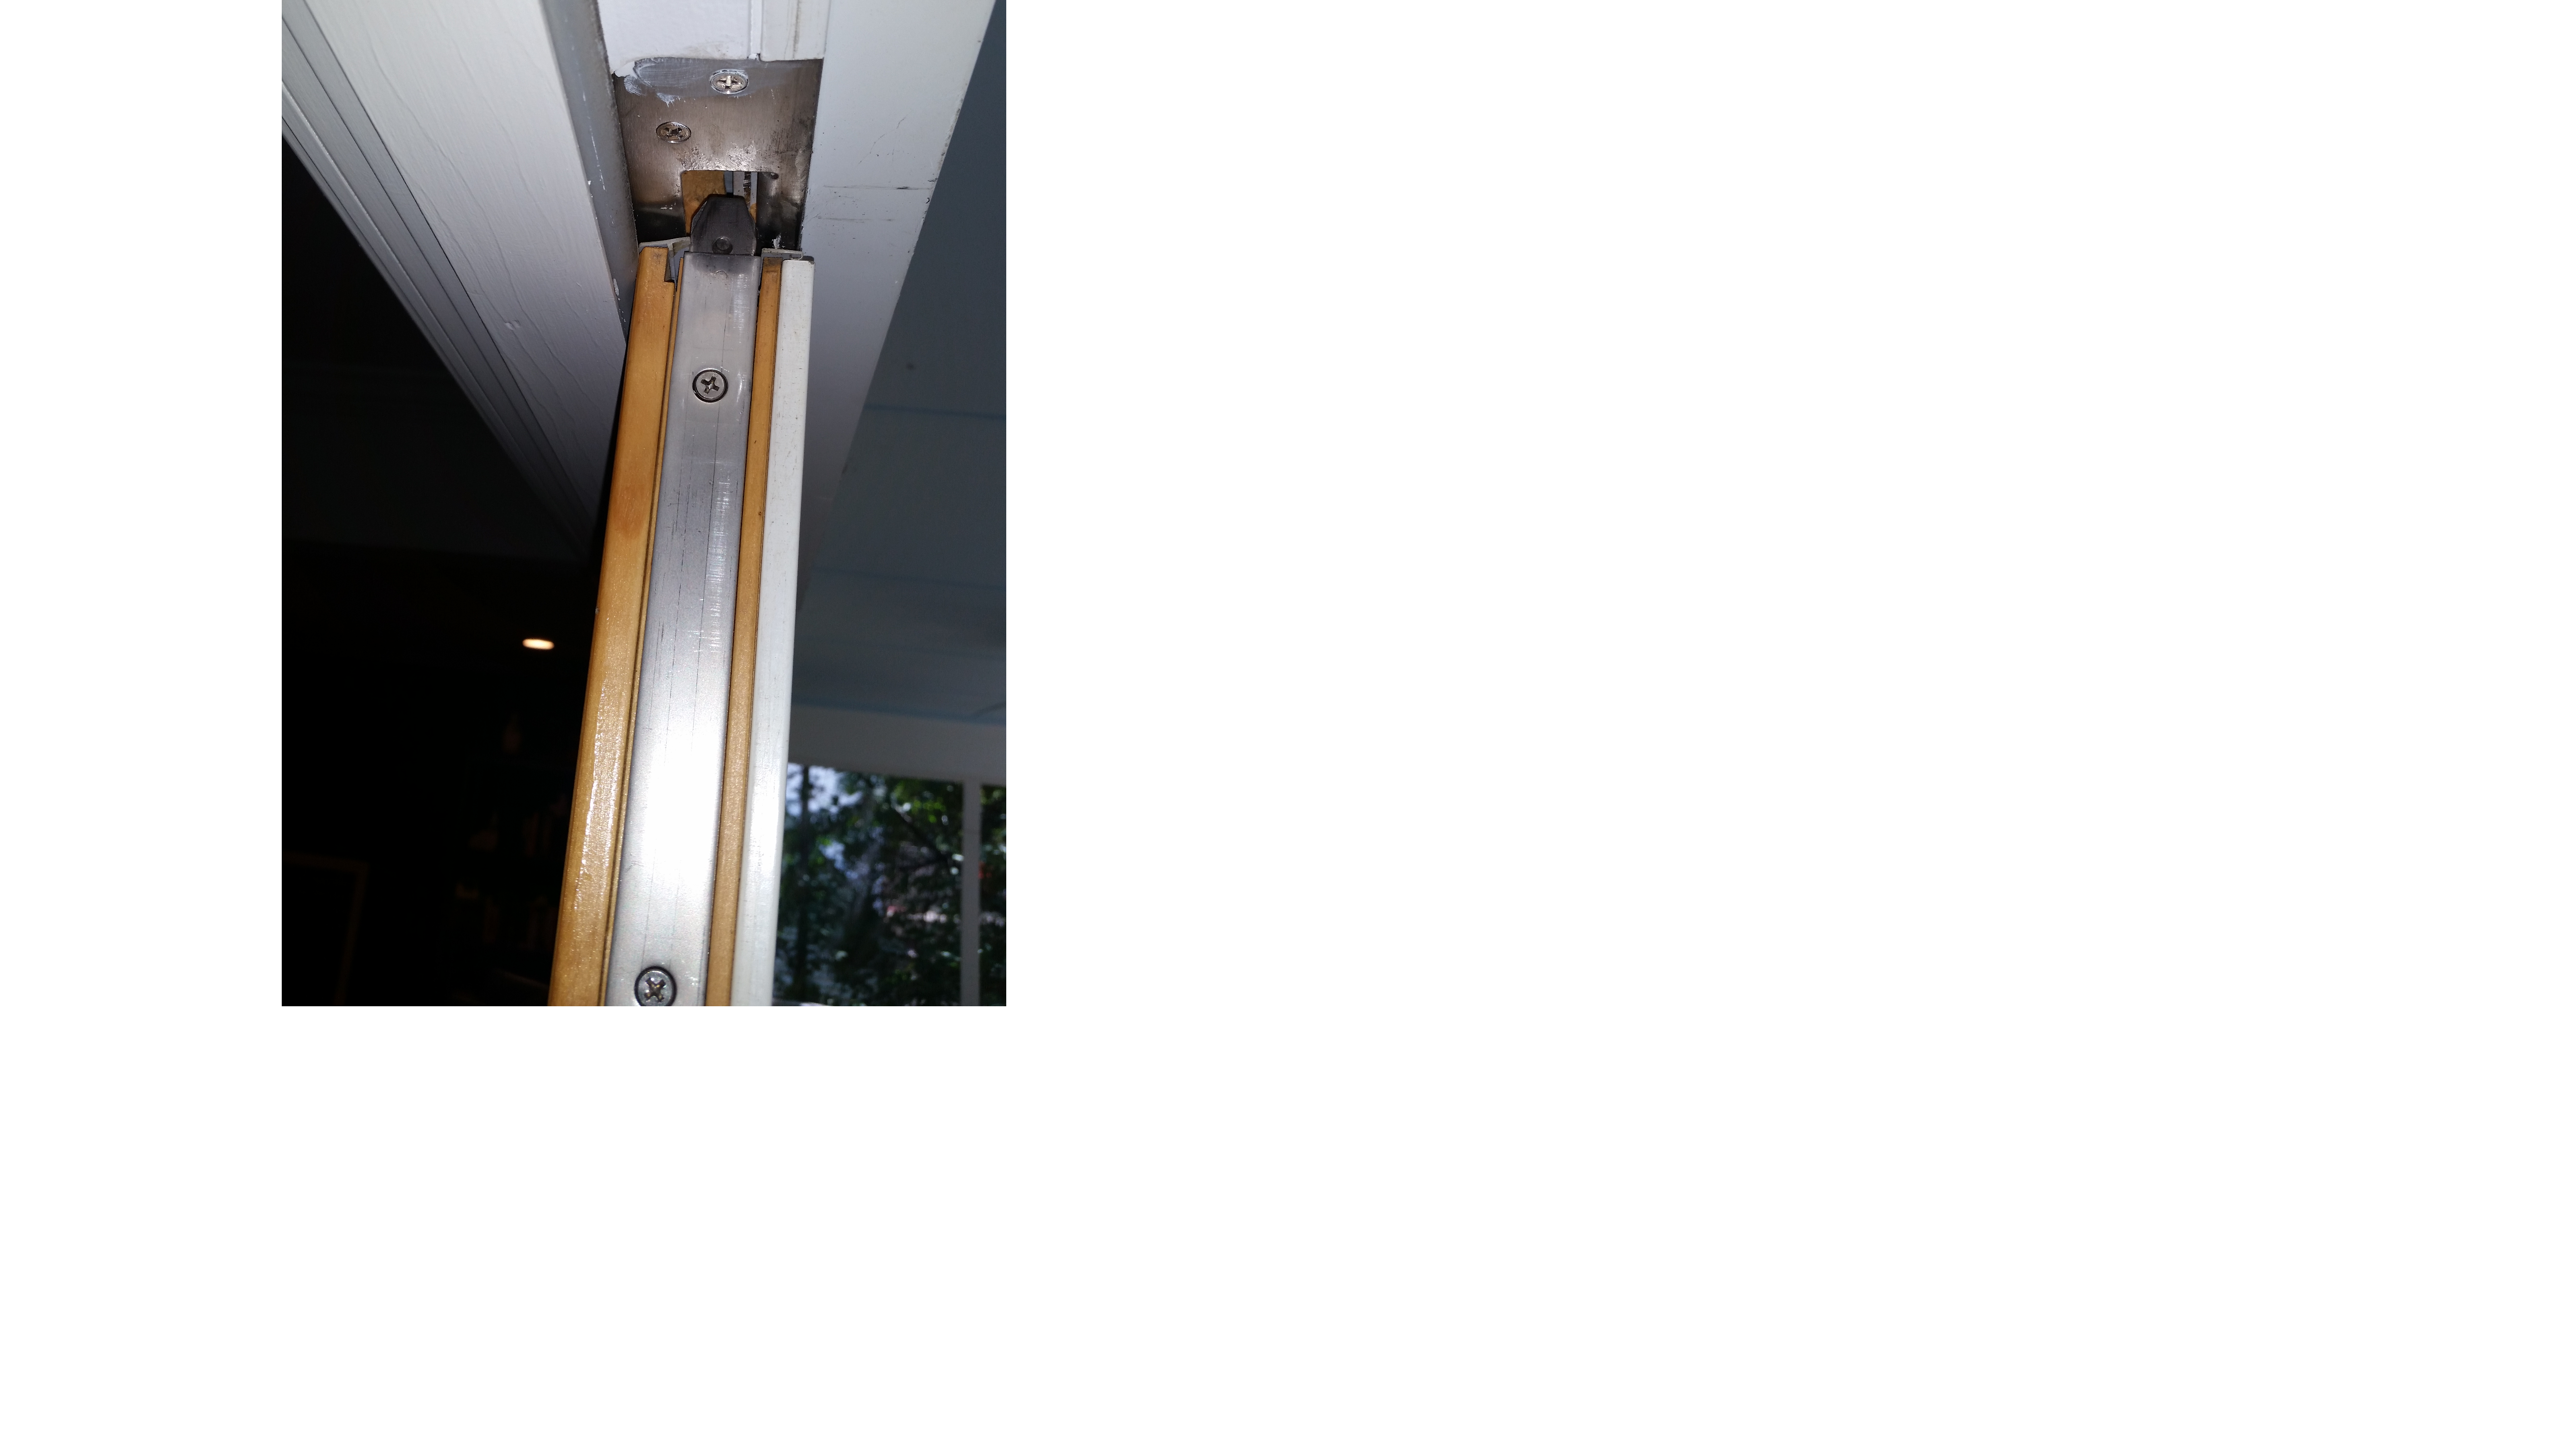 Jeld-wen French Doors - Major Lock Problem - General Discussion ...